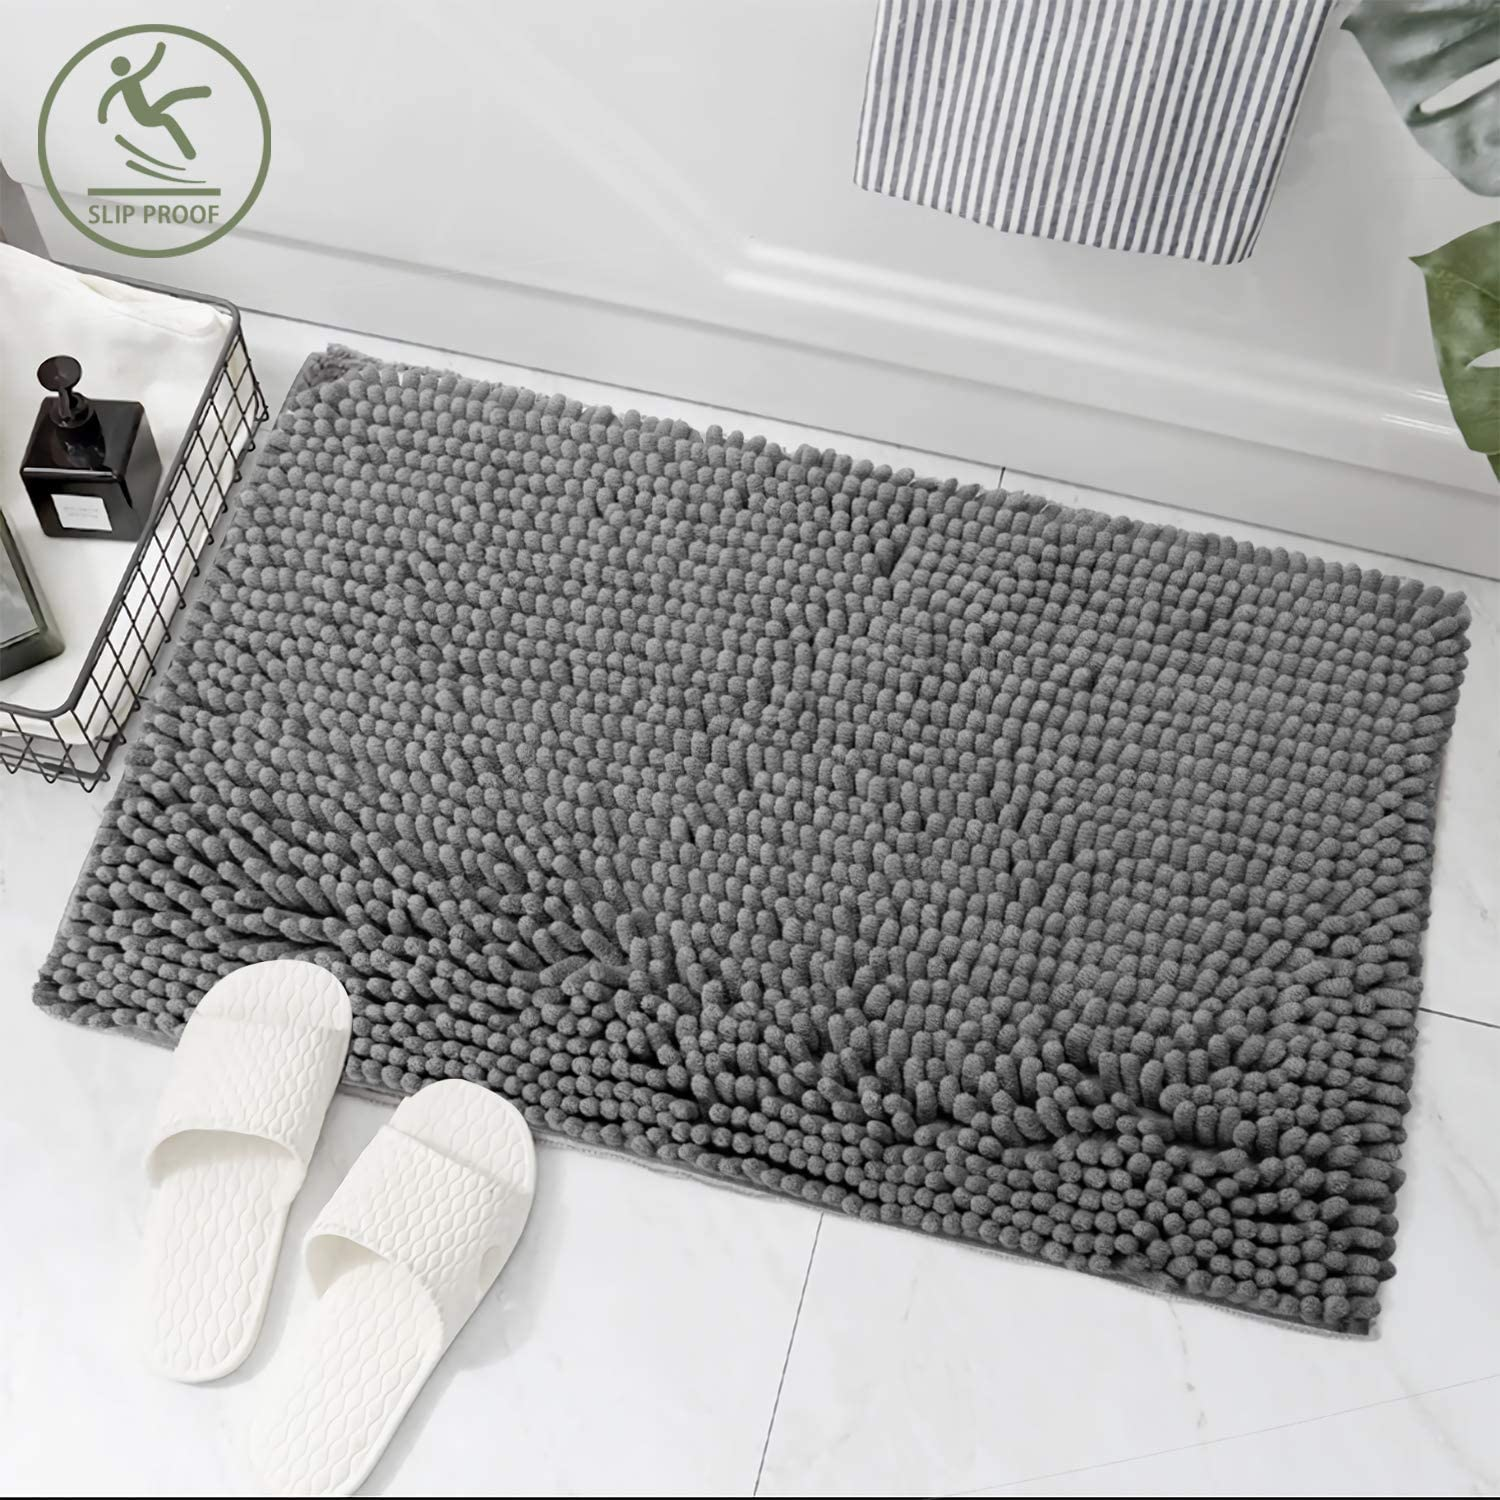 Non-Slip Runner Carpet for Tub Bathroom Shower Mat uxcell 17 x 24 Inch Thick Chenille Bath Rugs Soft and Absorbent Microfiber Shaggy Rug Machine-Washable Durable Area Rugs White